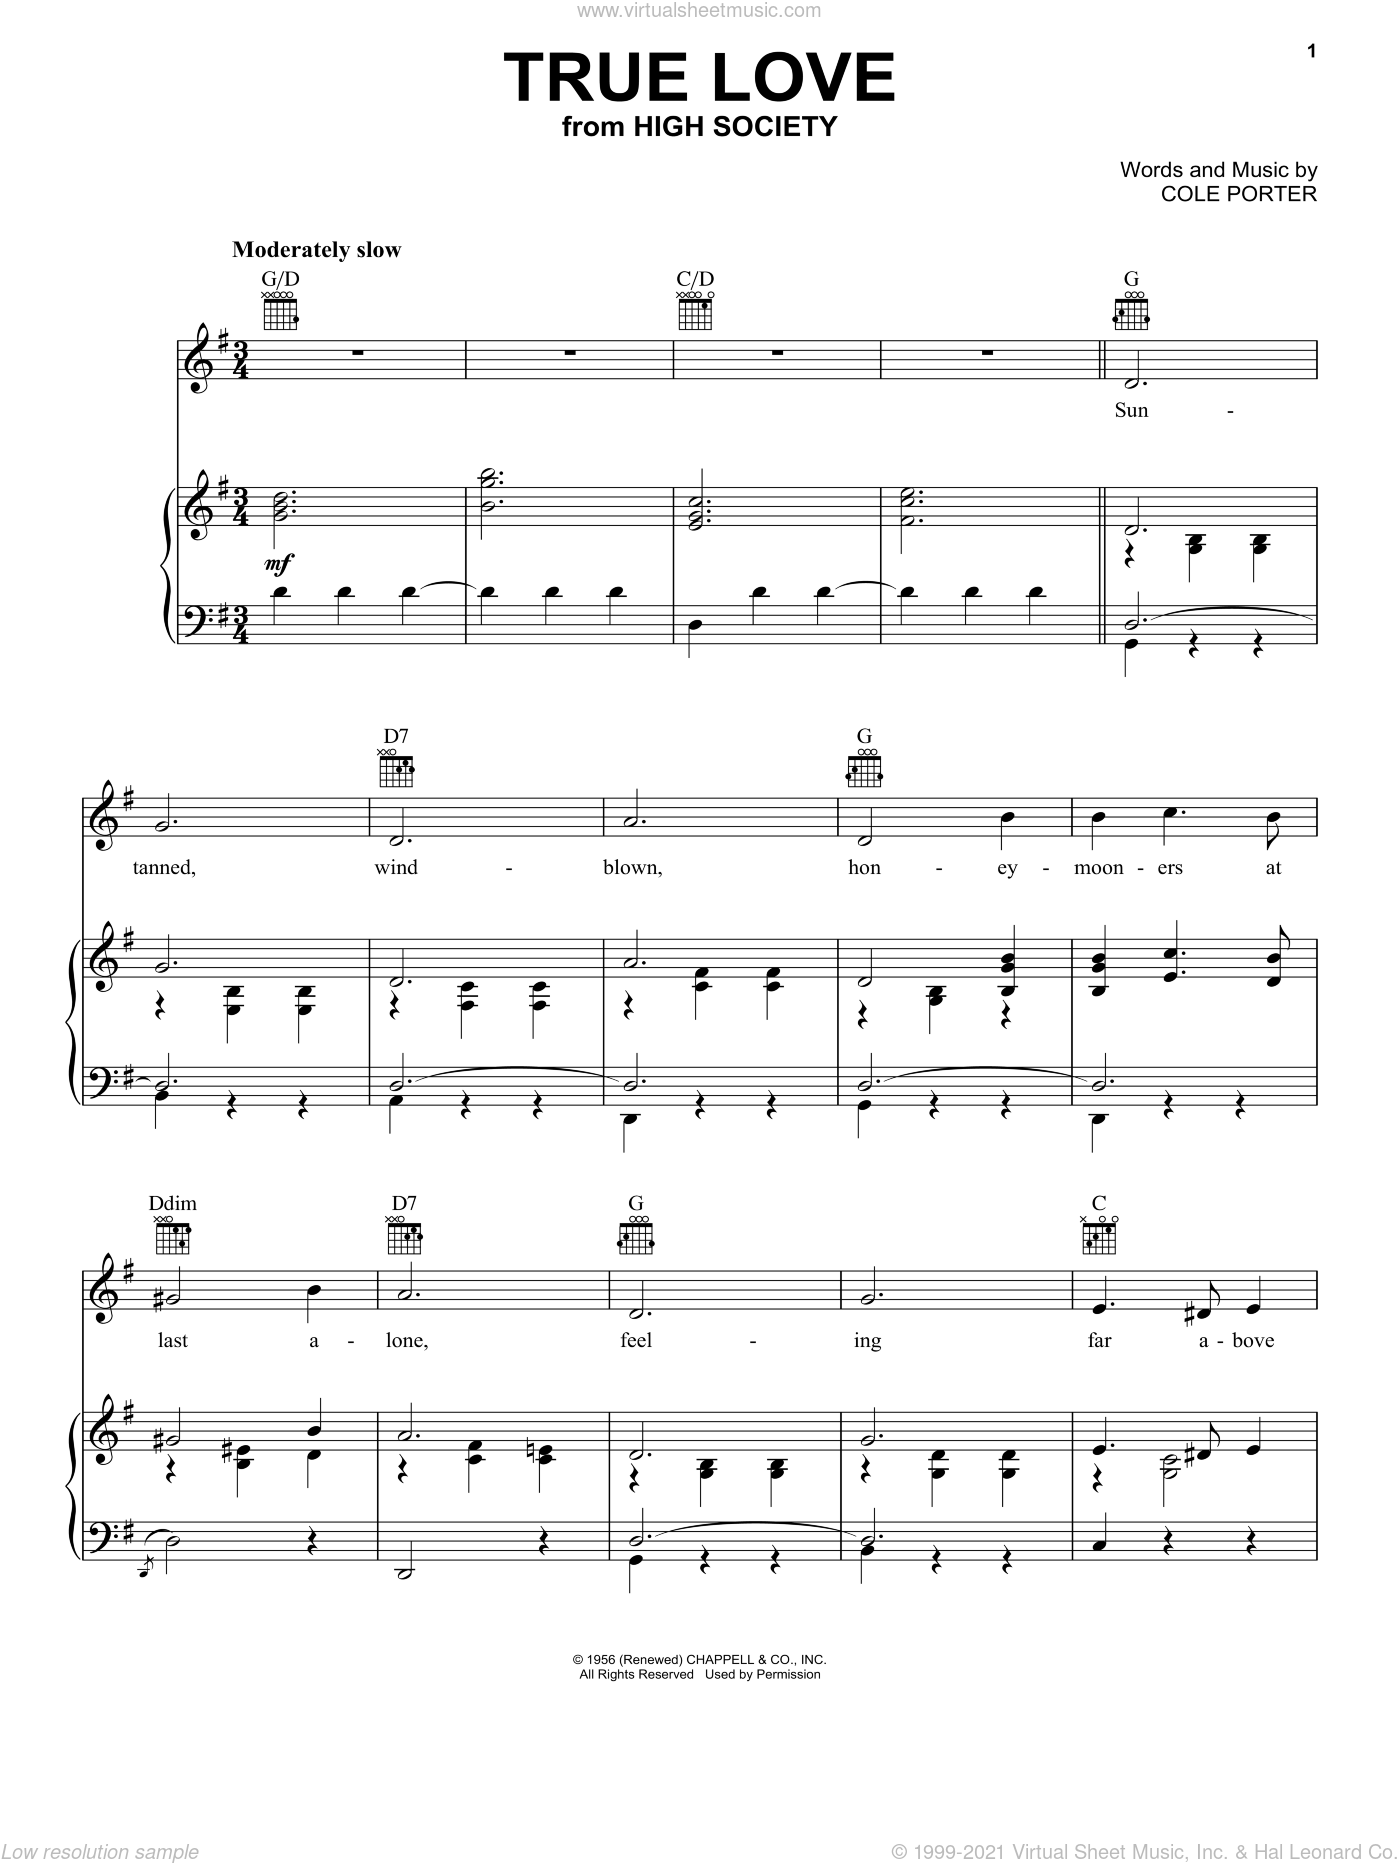 True Love sheet music for voice, piano or guitar by Cole Porter